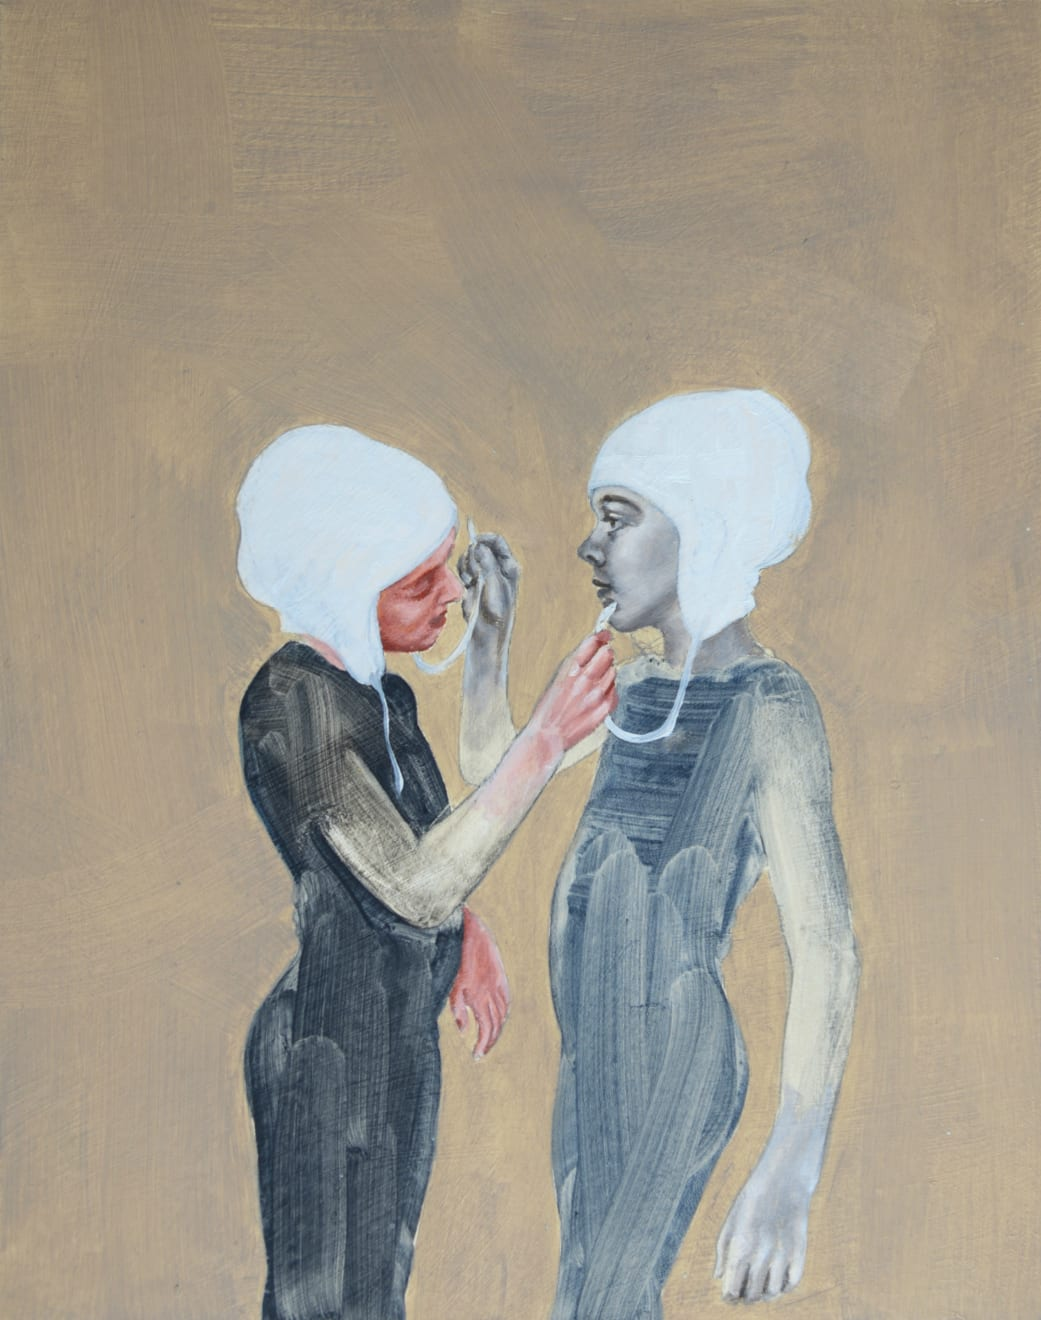 Pippa Young, Study for: Self-construction, 2015